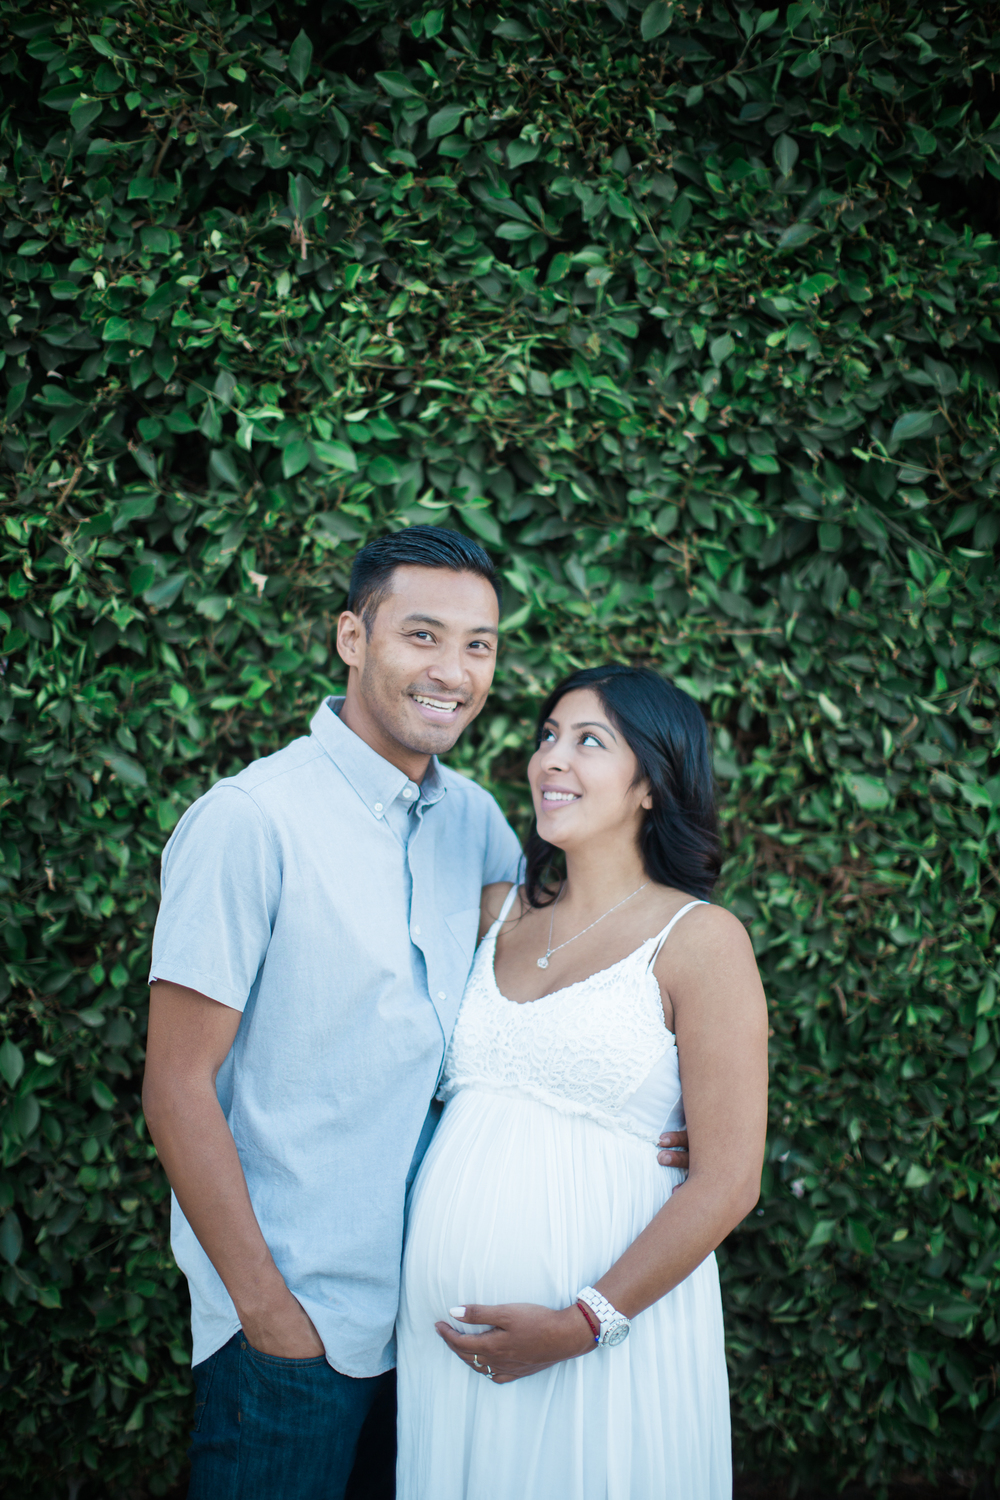 Marcella_Maternity_Cerritos_BrandonJFerlin_Photography-65.jpg